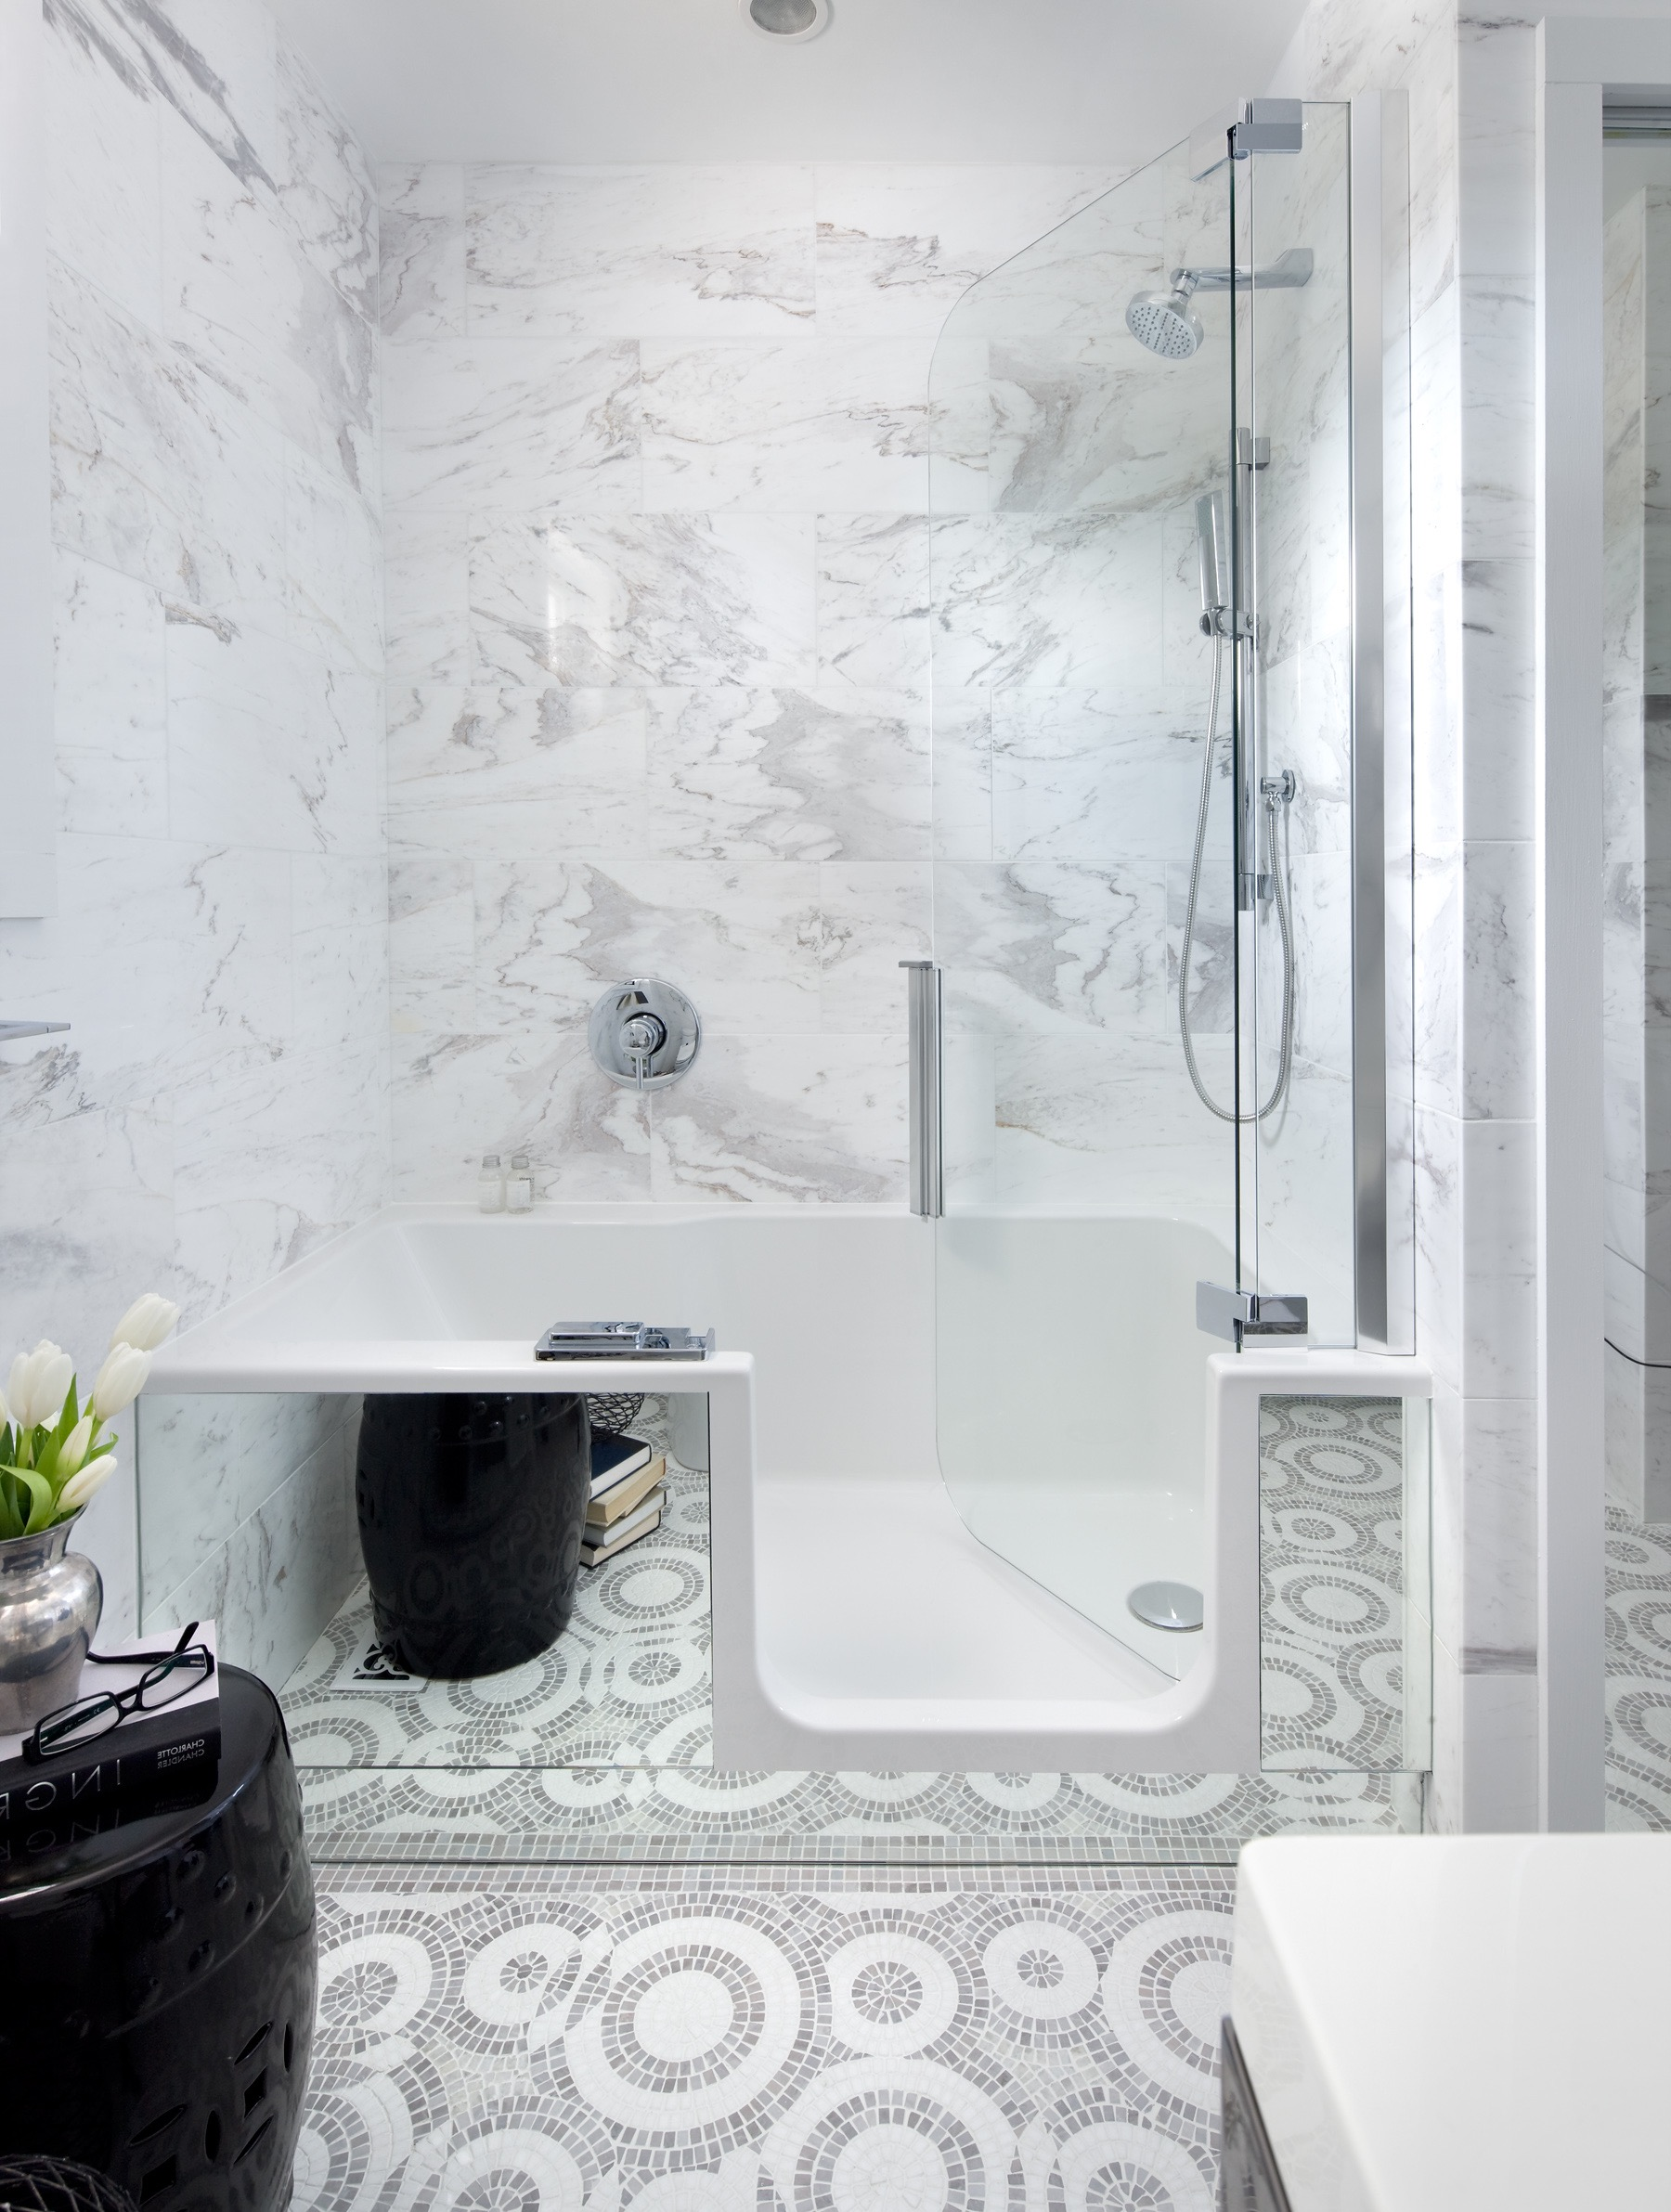 Modern Walk In Tubs And Shower With Marble Wall (View 11 of 15)